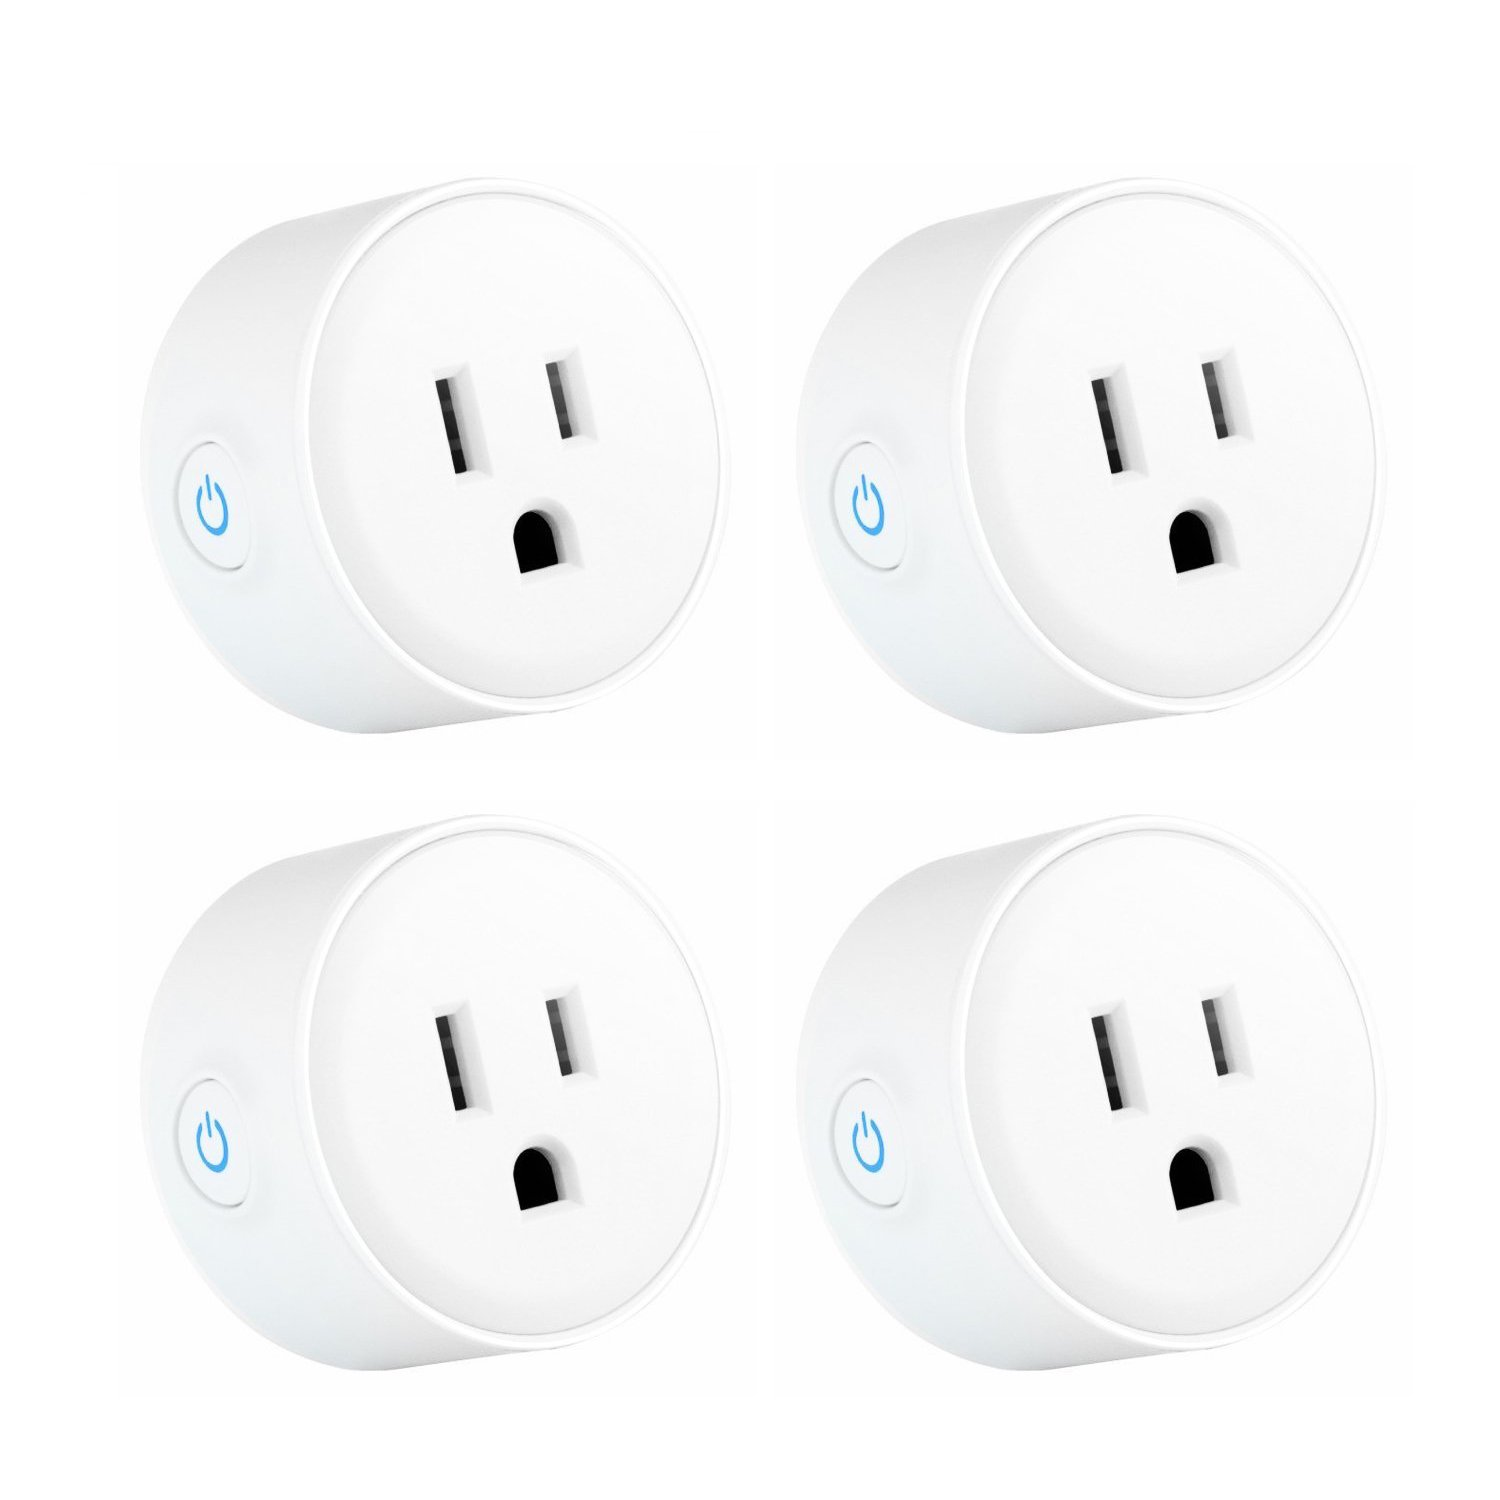 Wifi Smart Plug,Compatible with Alexa, iHoan Smart Socket Control From Anywhere Via Free APP for iOS/android with Timing Function, No Hub Required (grey)